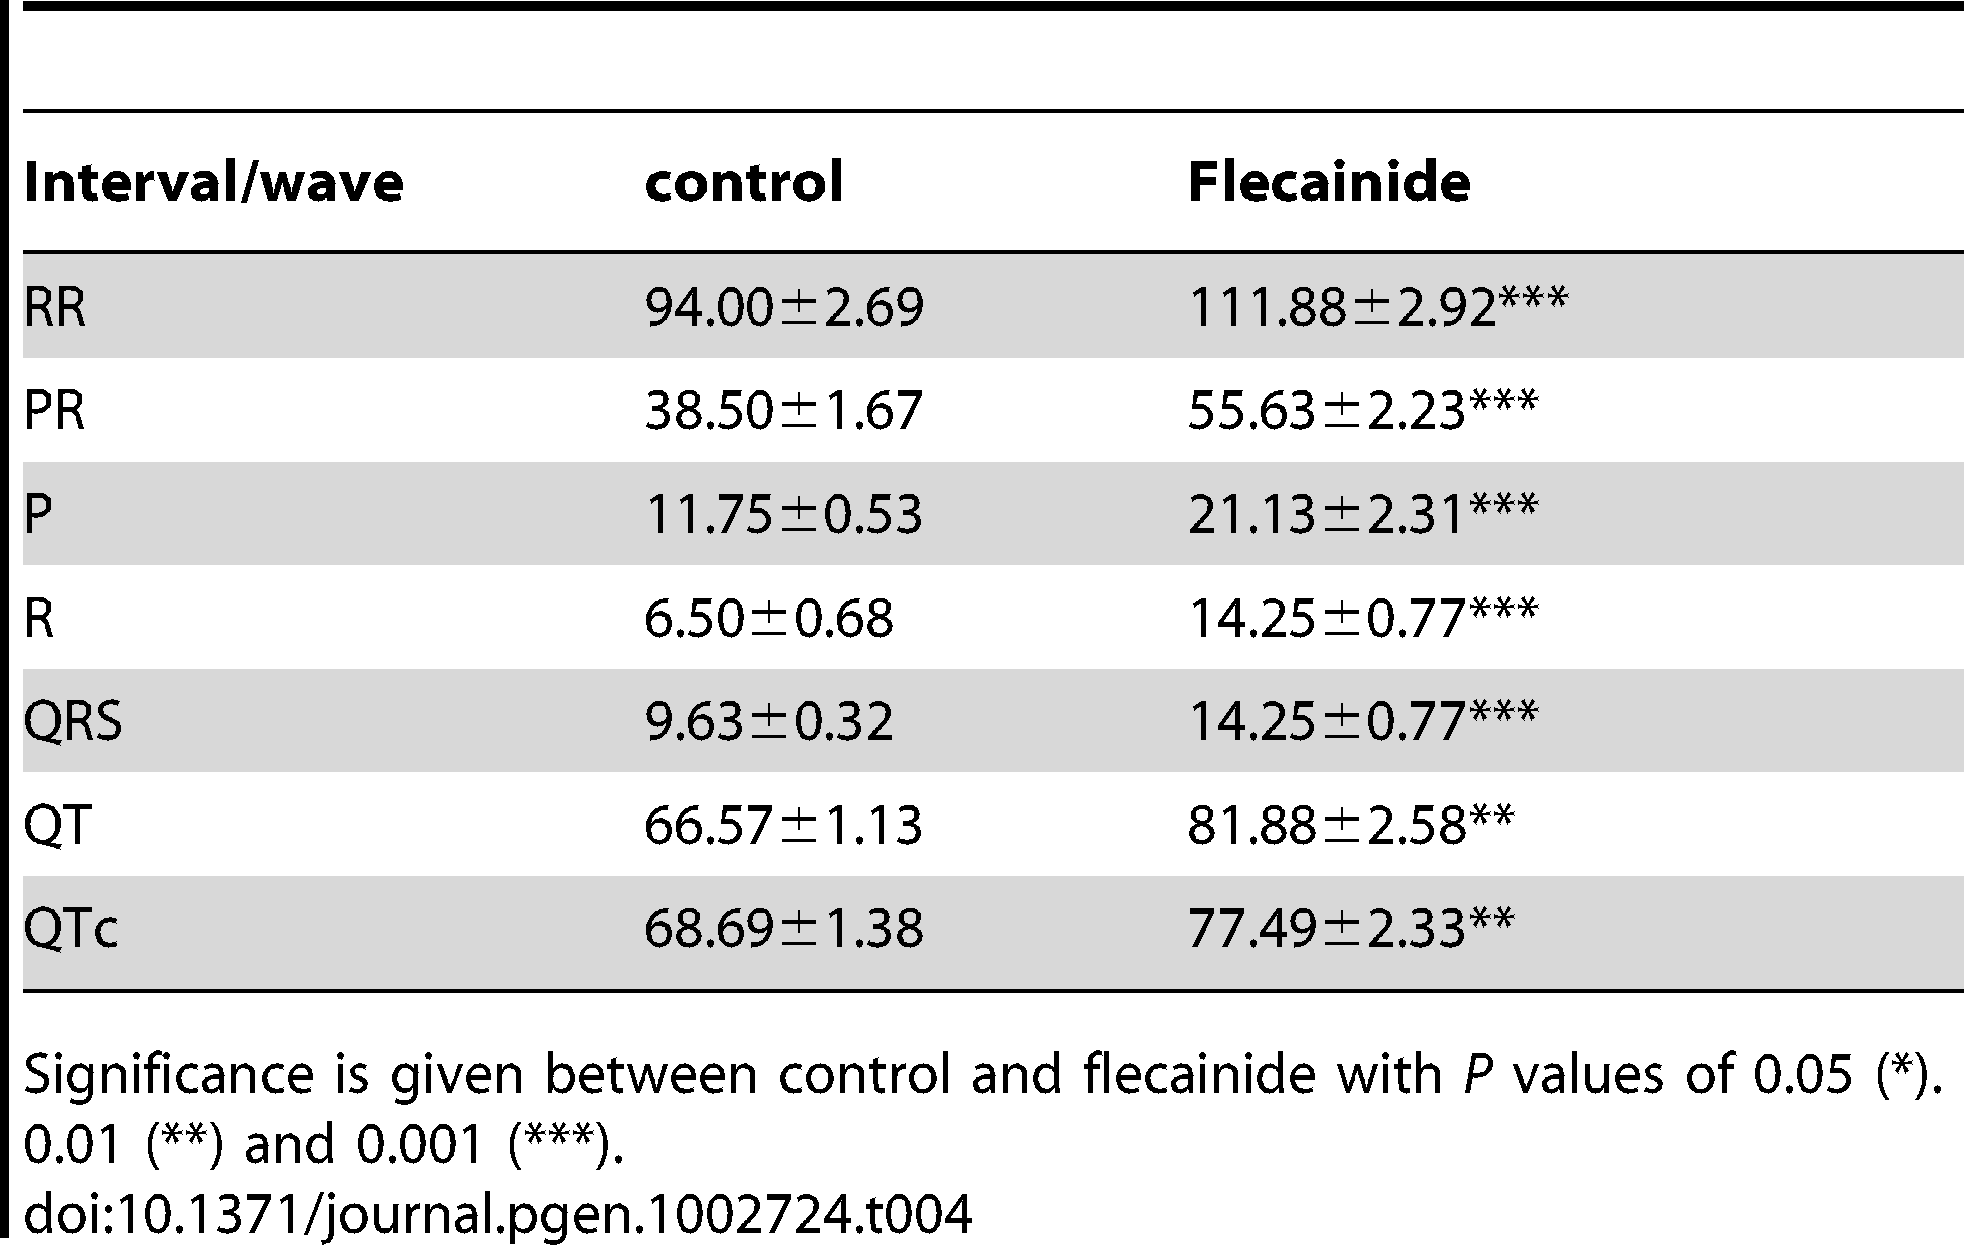 Effect of the sodium channel blocker flecainide on the duration (ms) of P, R, and QRS waves and RR, PR, QT, and QTc intervals in Ts65Dn mice (N=8).